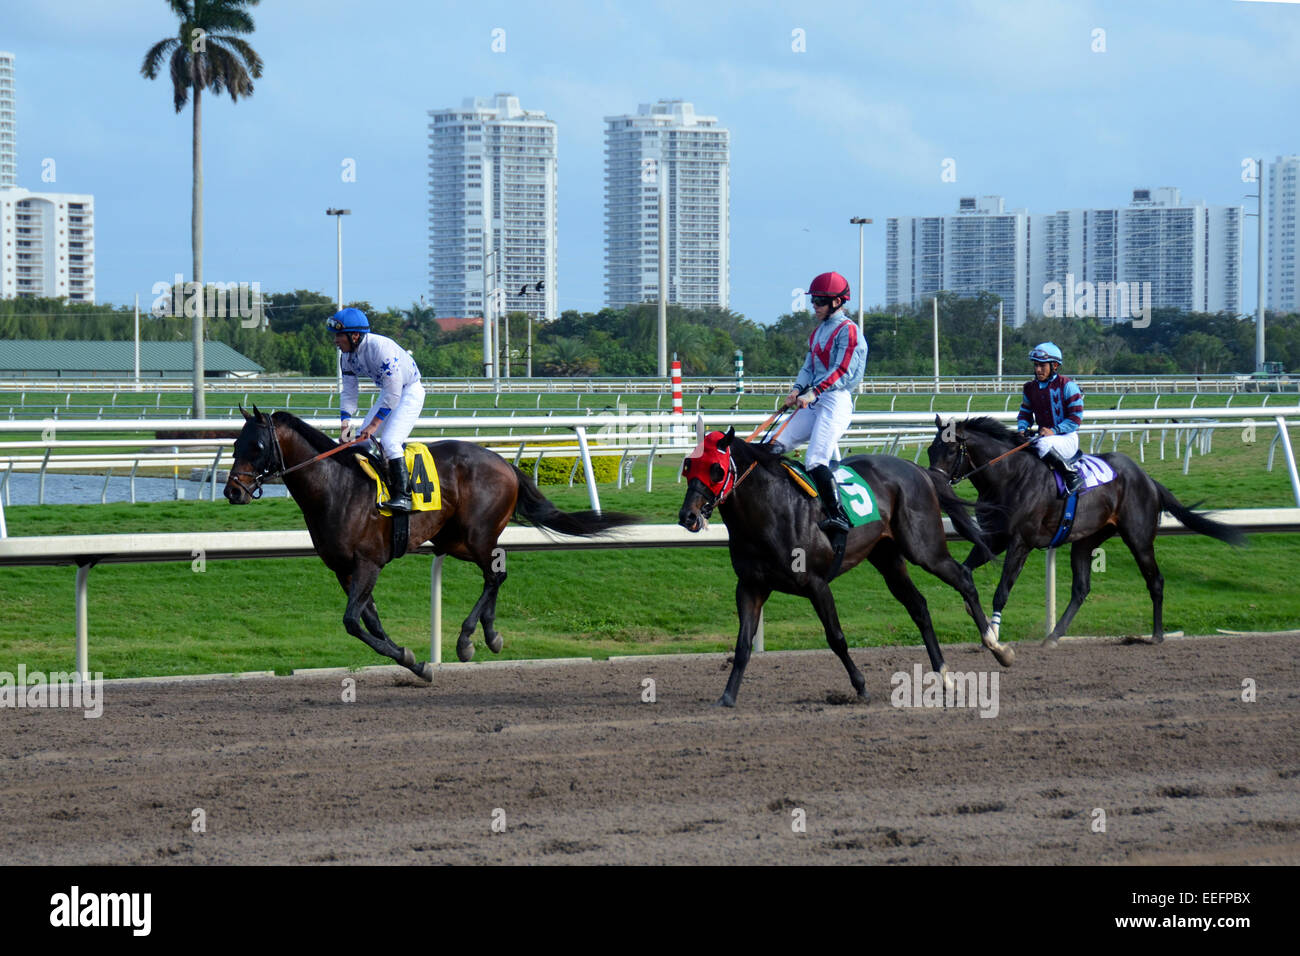 Miami, USA - February 4, 2011: Horse racing teams practice on a race day at Gulfstream Park outside of Miami, Florida - Stock Image